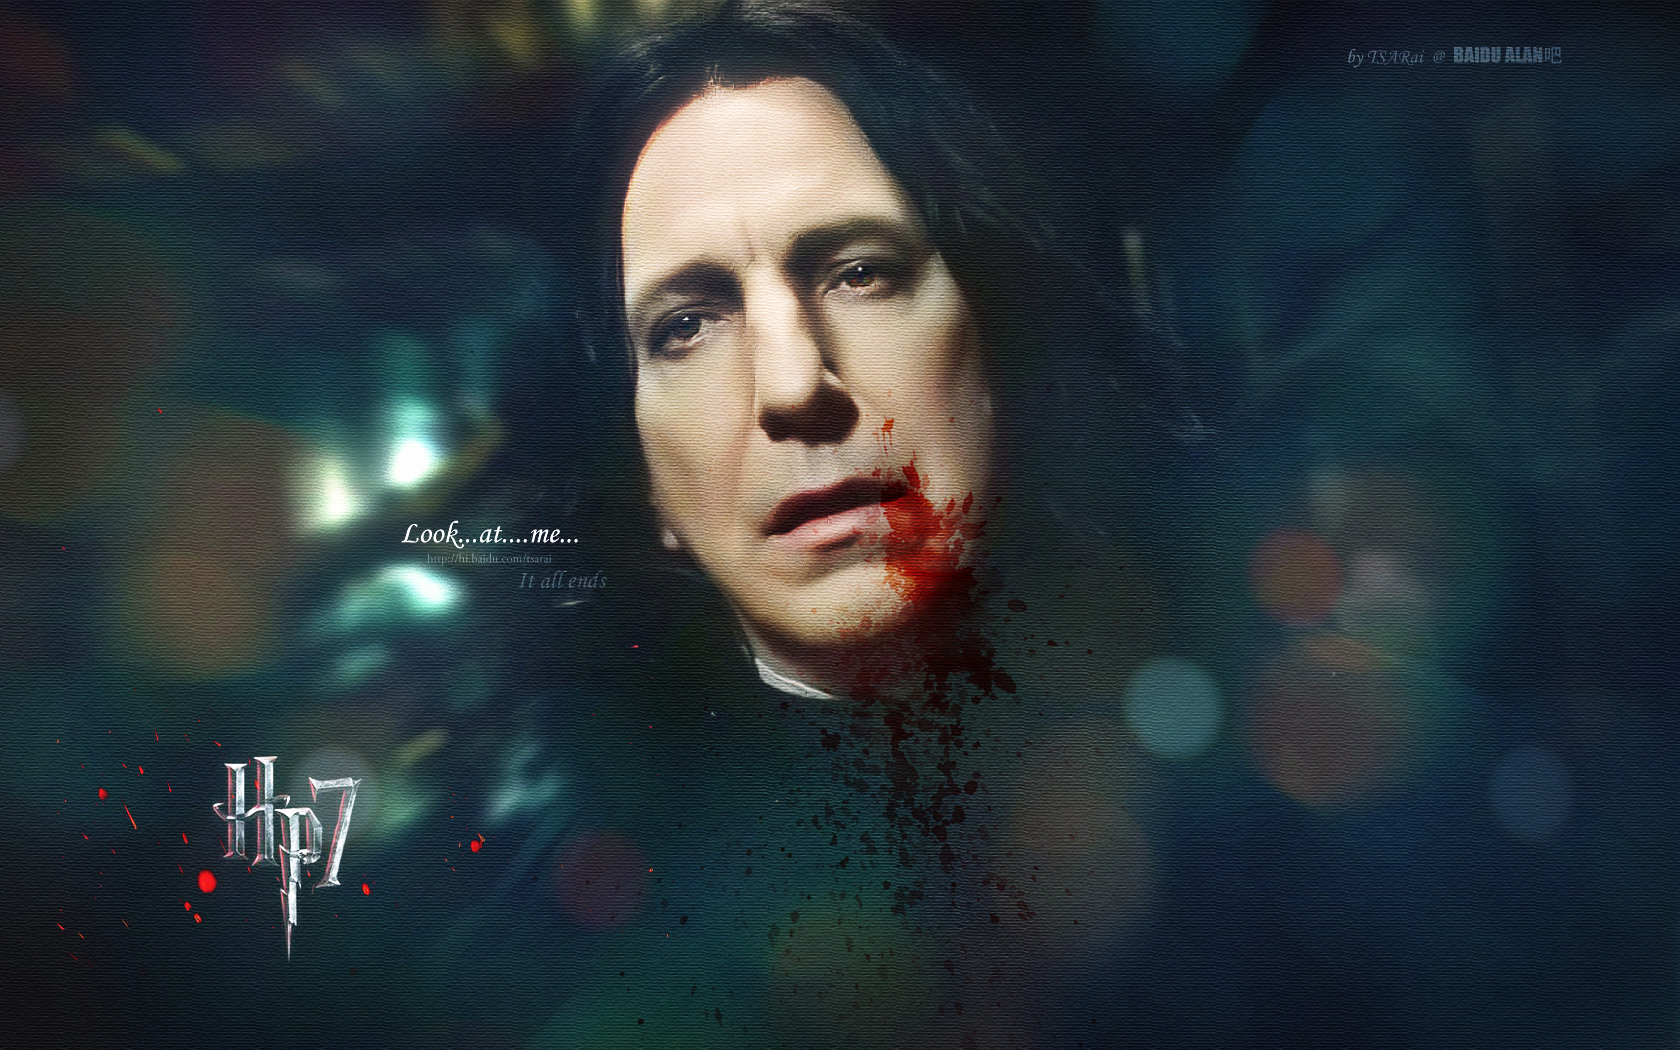 Severus Snape-look At Me - Harry Potter And The Deathly Hallows: Part Ii (2011) - HD Wallpaper